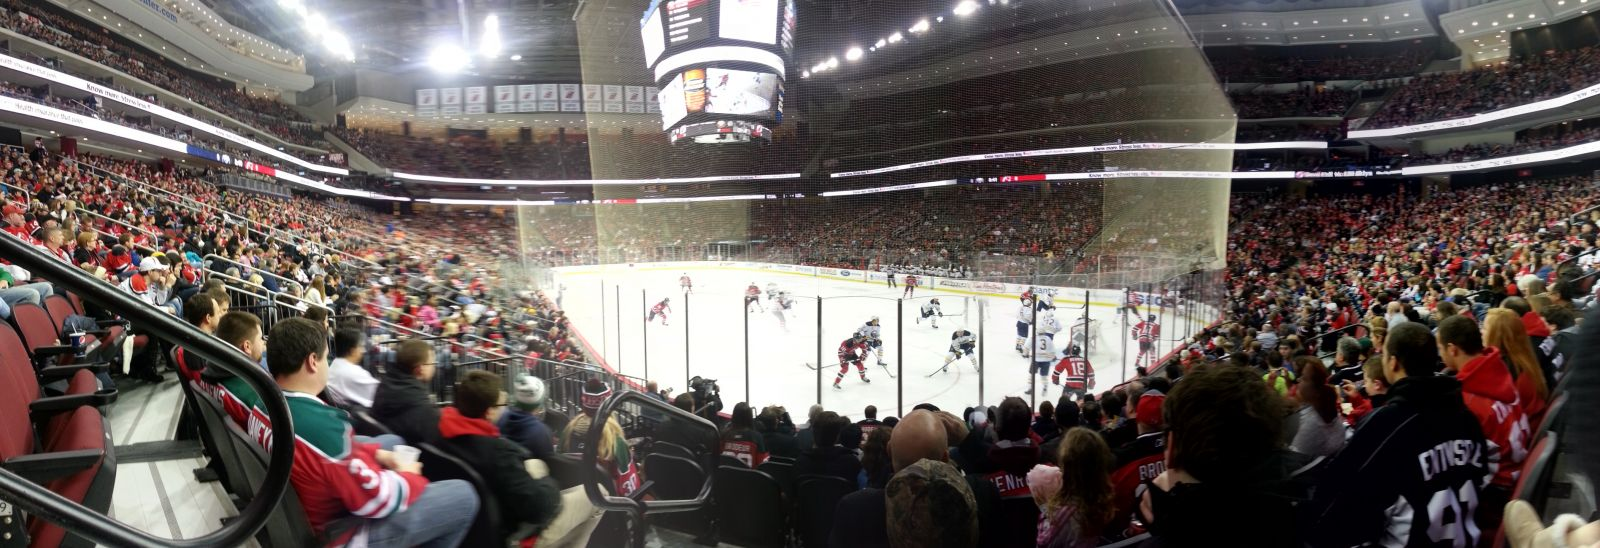 New Jersey Devils Seat View for Prudential Center Section 1, Row 9, Seat 12